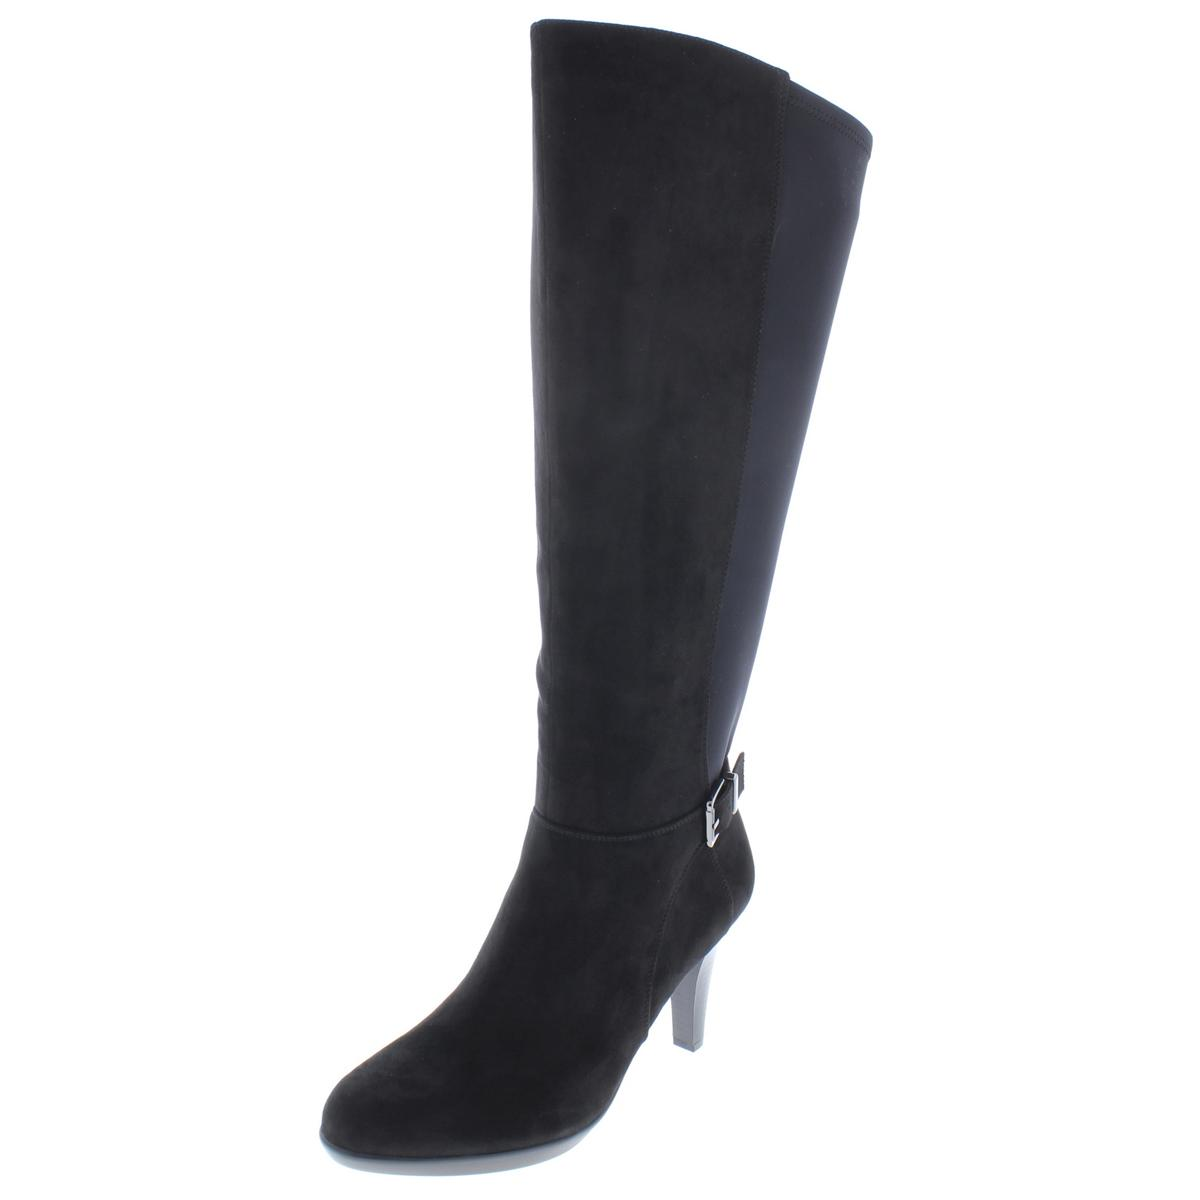 2458c005be60 Details about Alfani Womens Vennuss Wide Calf Fashion Over-The-Knee Boots  Shoes BHFO 2511